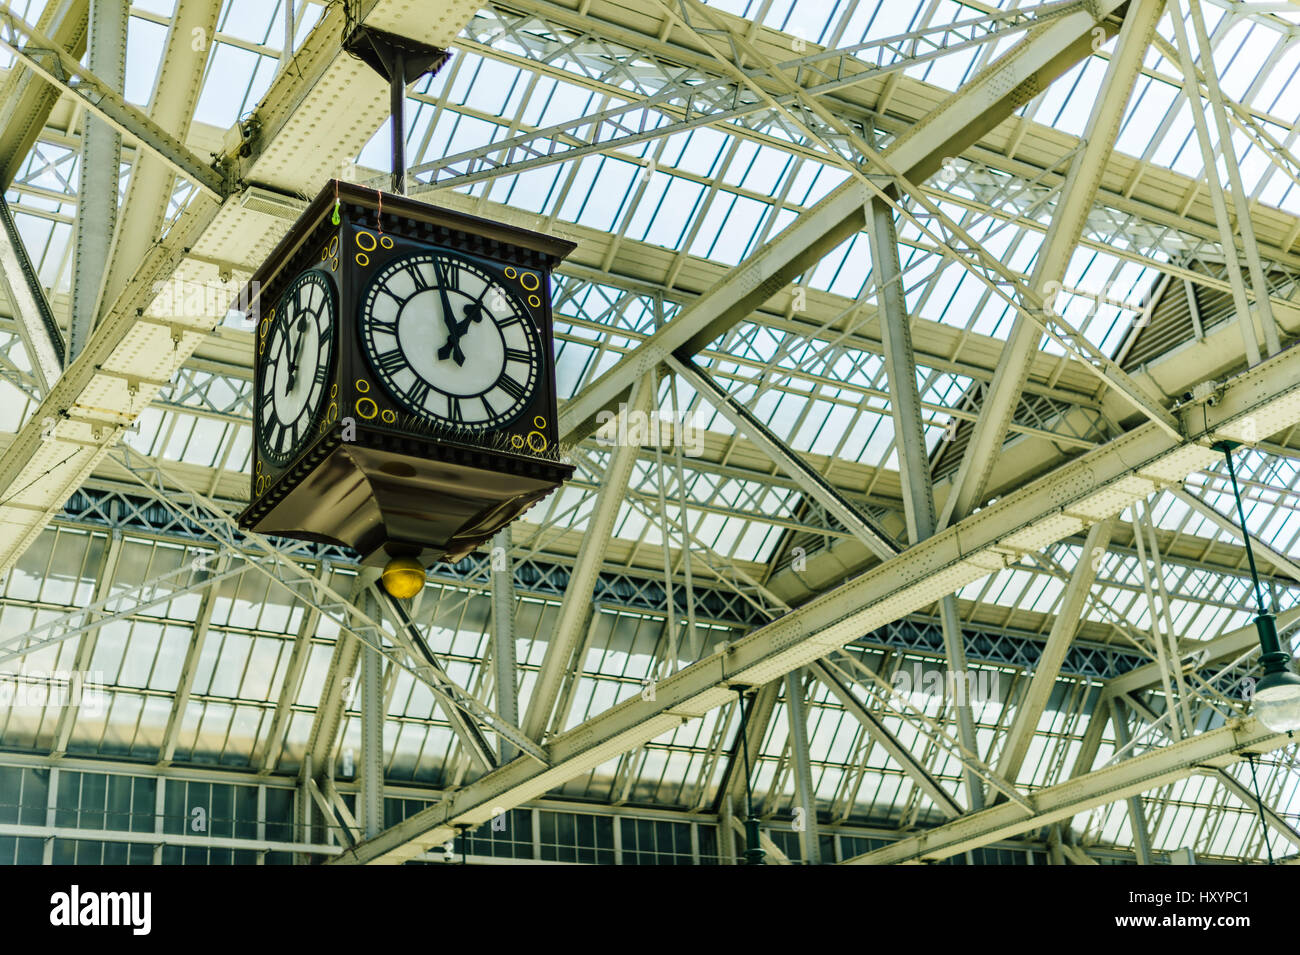 Large Clock in Glasgow's Central Station Train Station Stock Photo